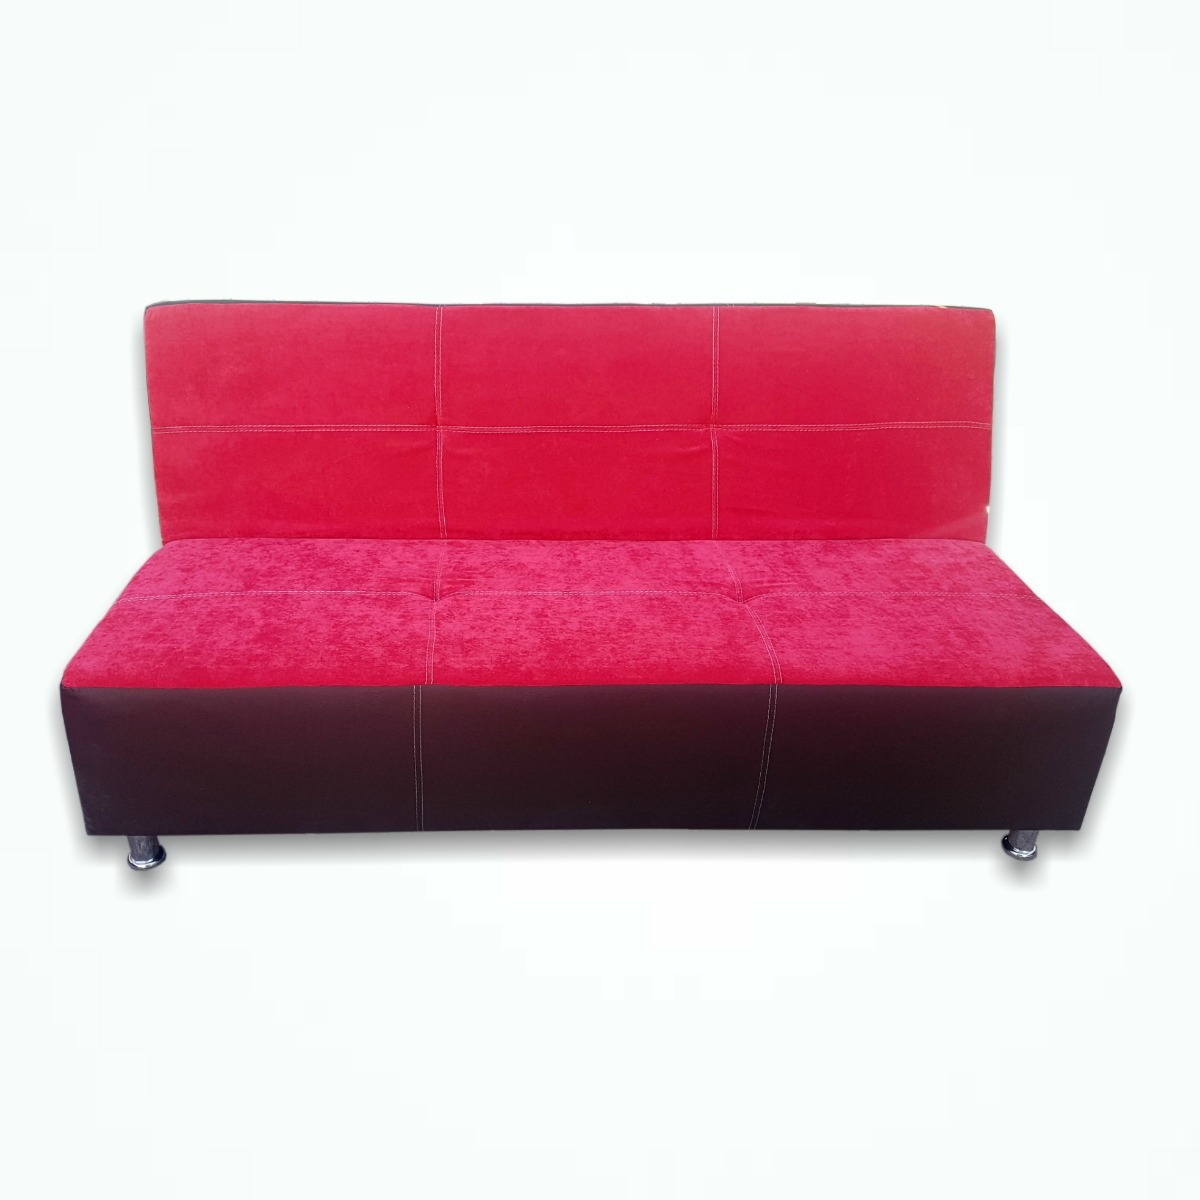 Sofa Cama Barato Urge Sofa Moderno Barato Sof With Sofa Moderno Barato Simple Sofa